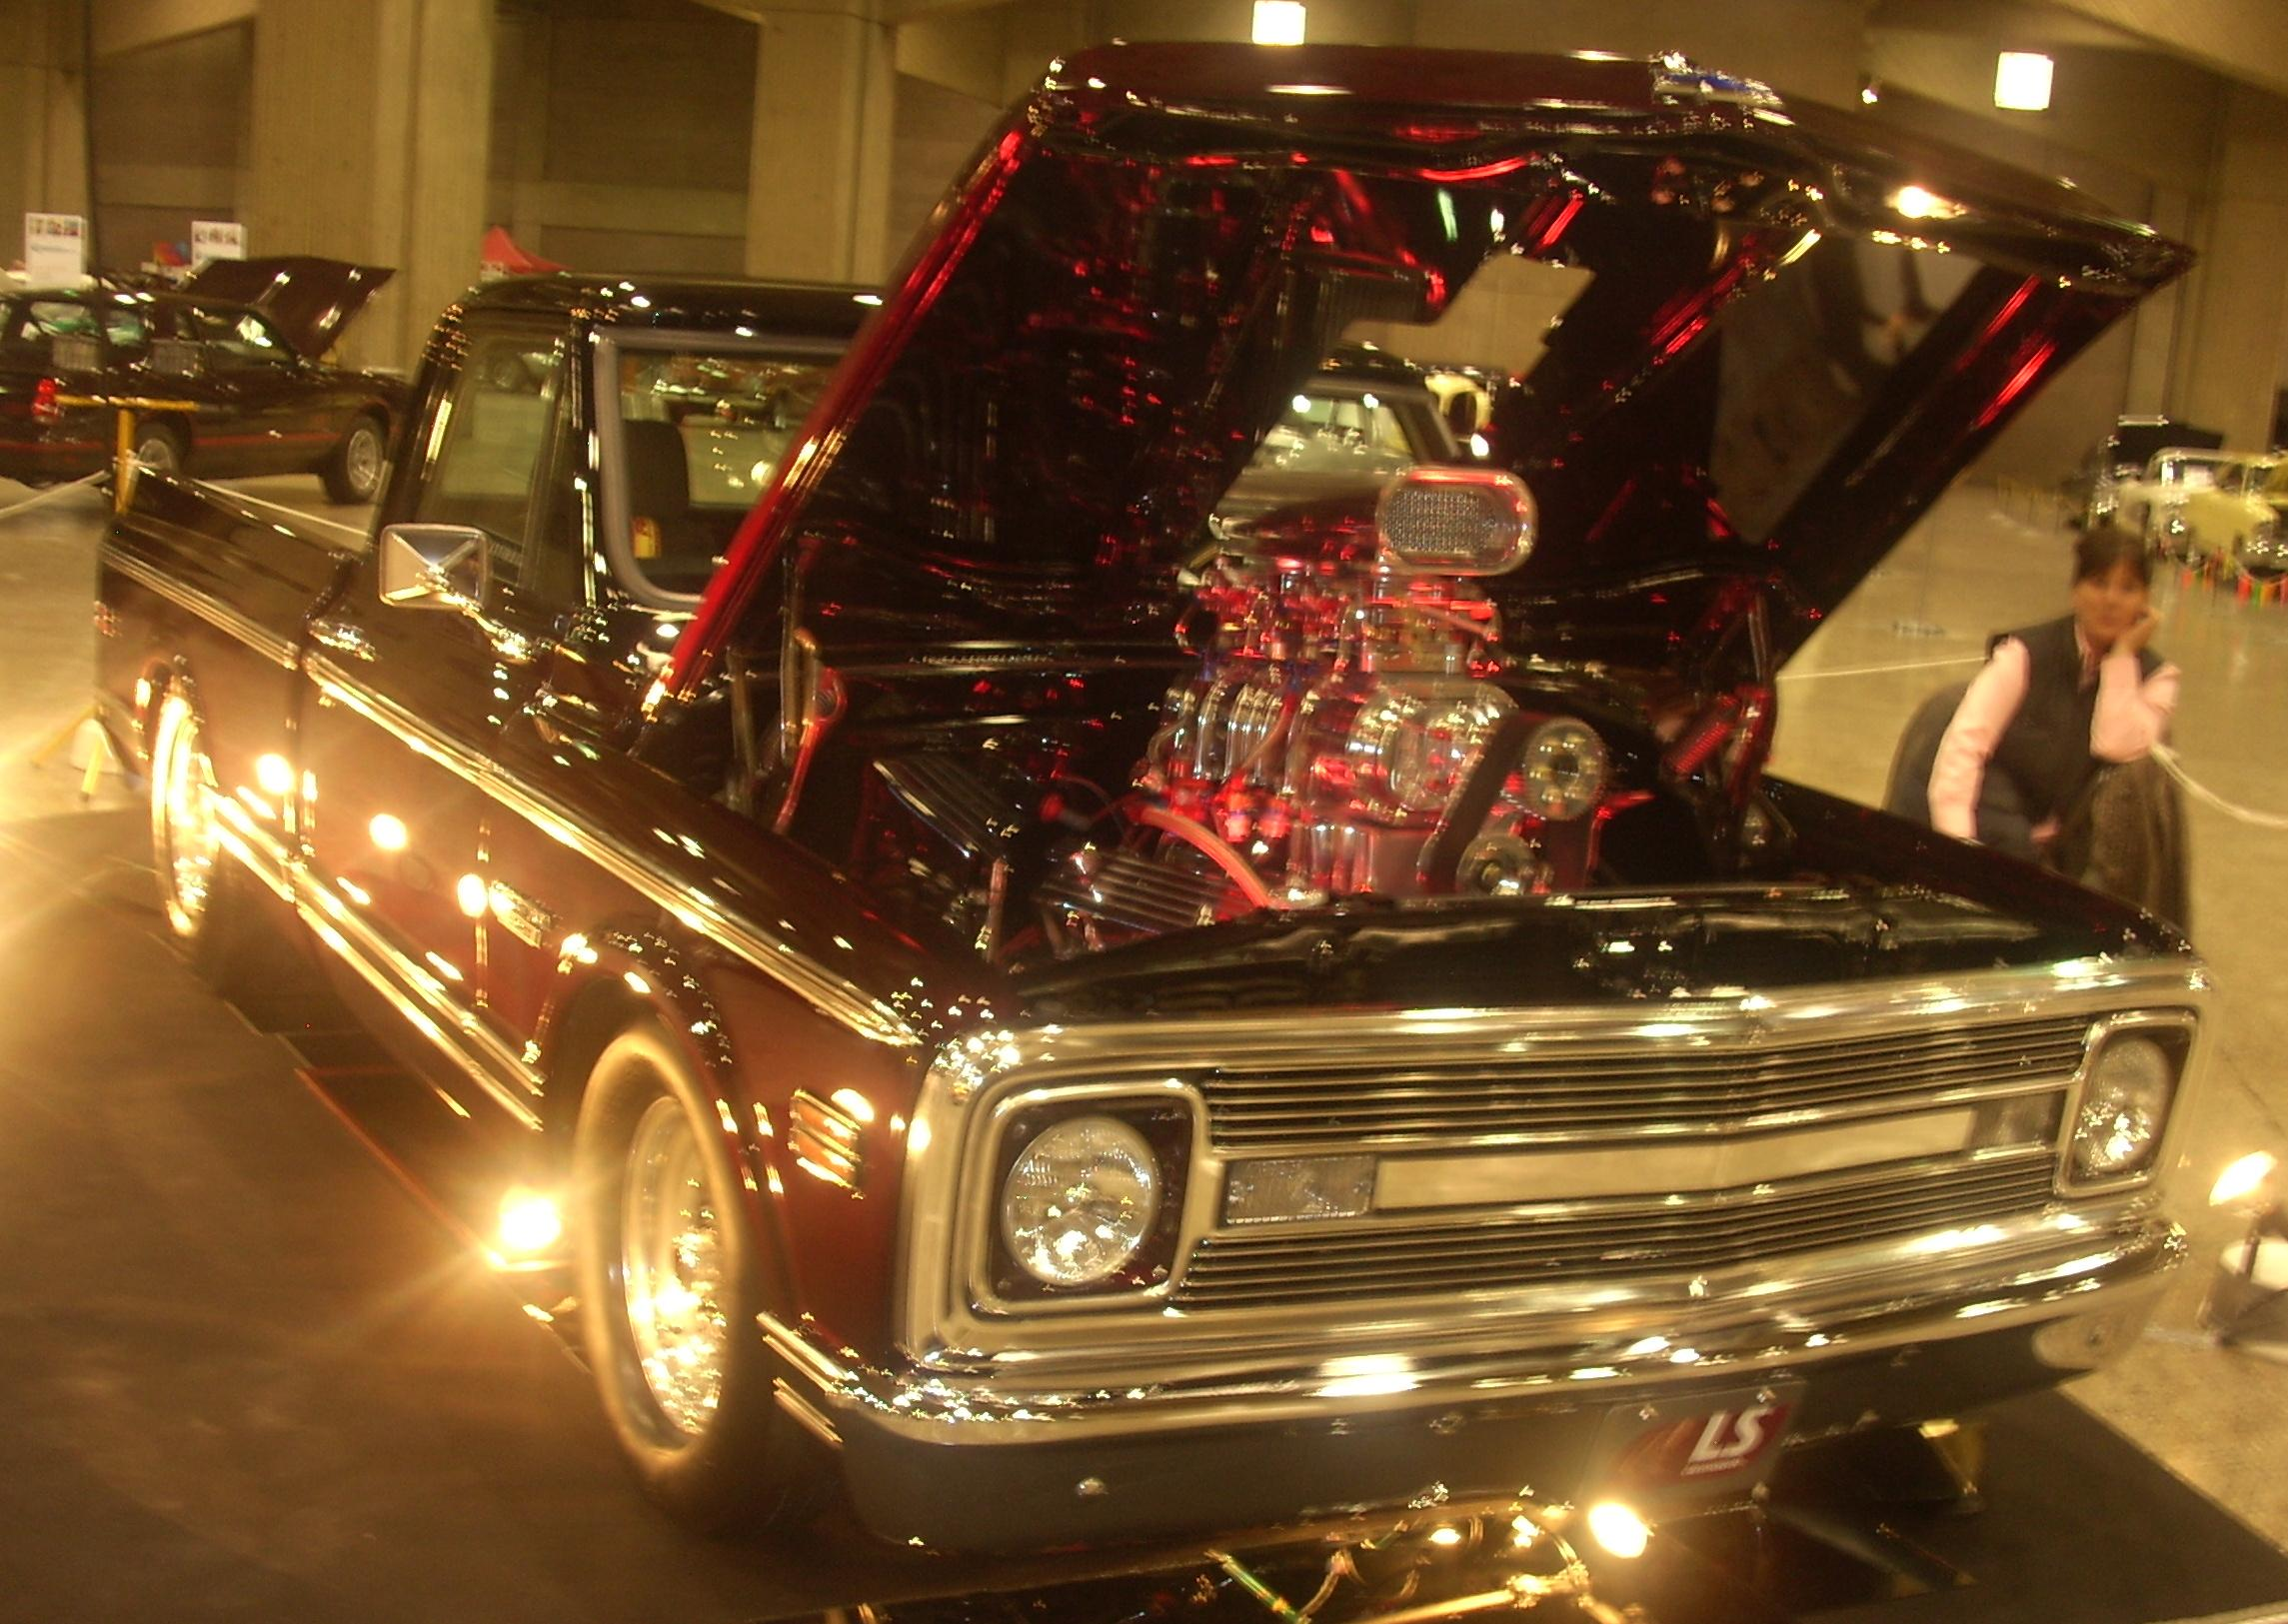 Fully Restored 1970 Chevy C10